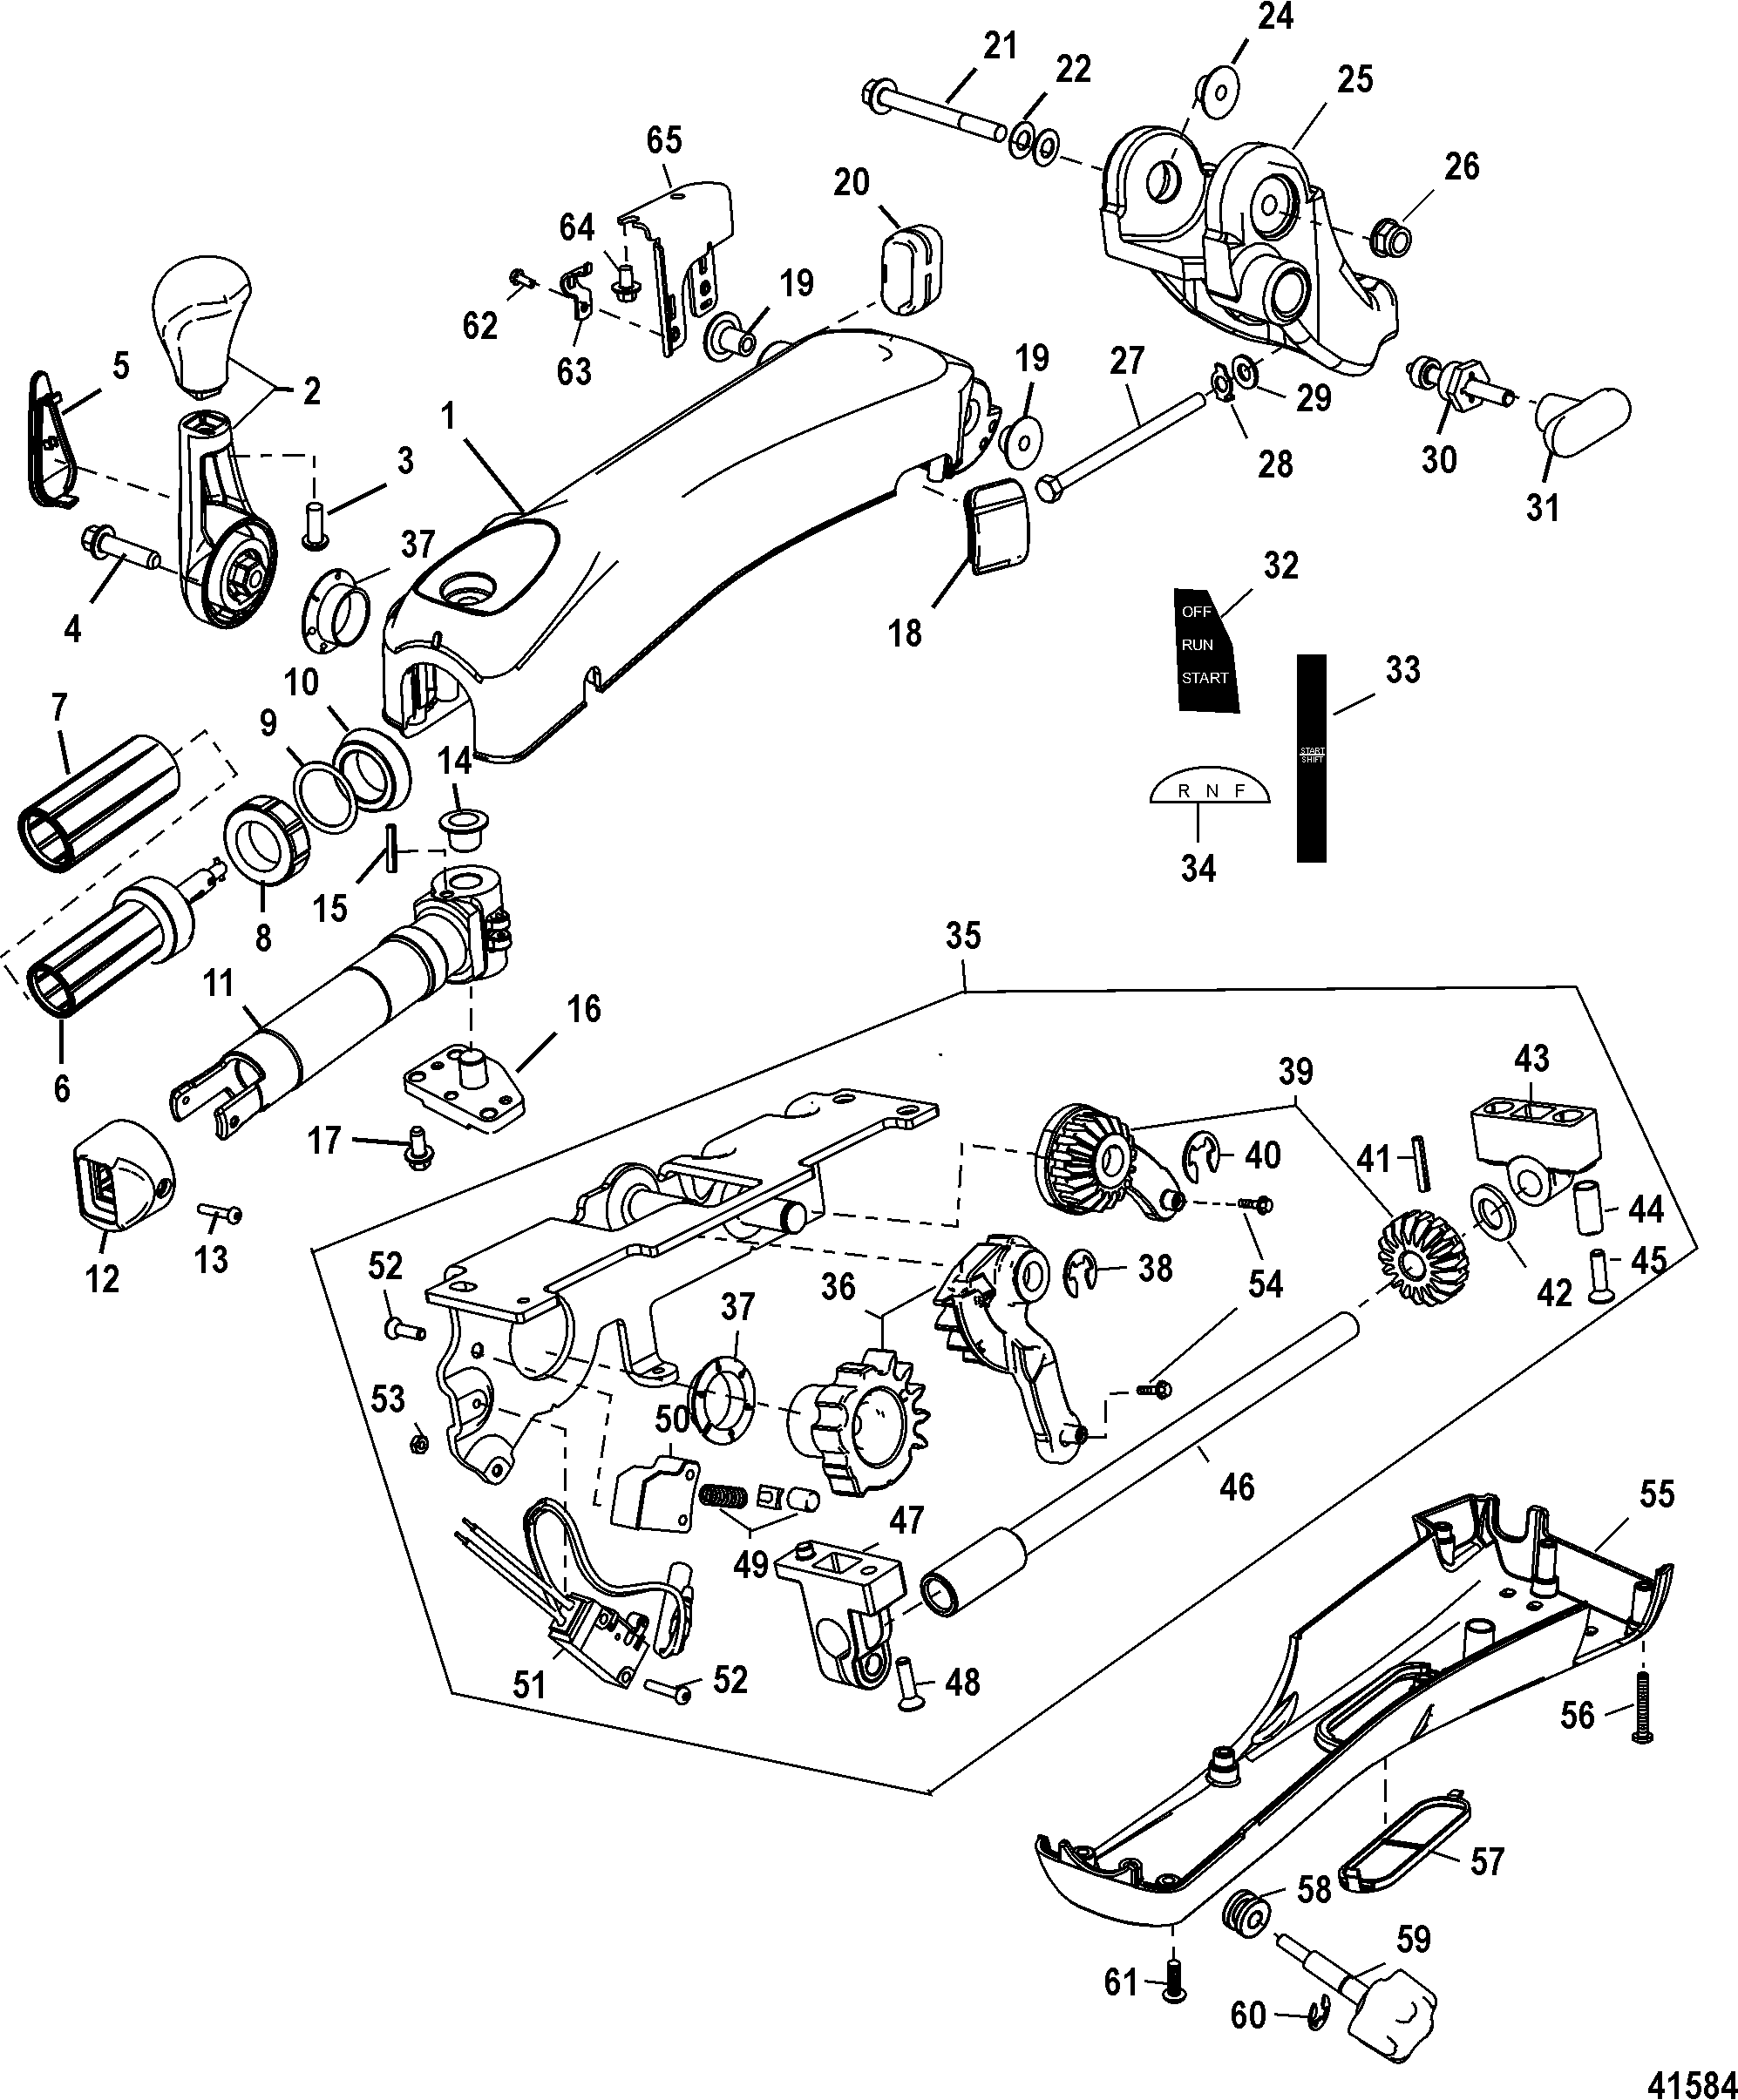 Show product moreover Ignition Coil Mounting 1c104423 0p560349 And Below additionally 6cls5 99 250 Efi Mercury Outboard No Spark Bottom besides 364295 Troubleshooting Kill Switch Honda Atv 93 Trx300 together with Info. on mercury 40 hp wiring diagram